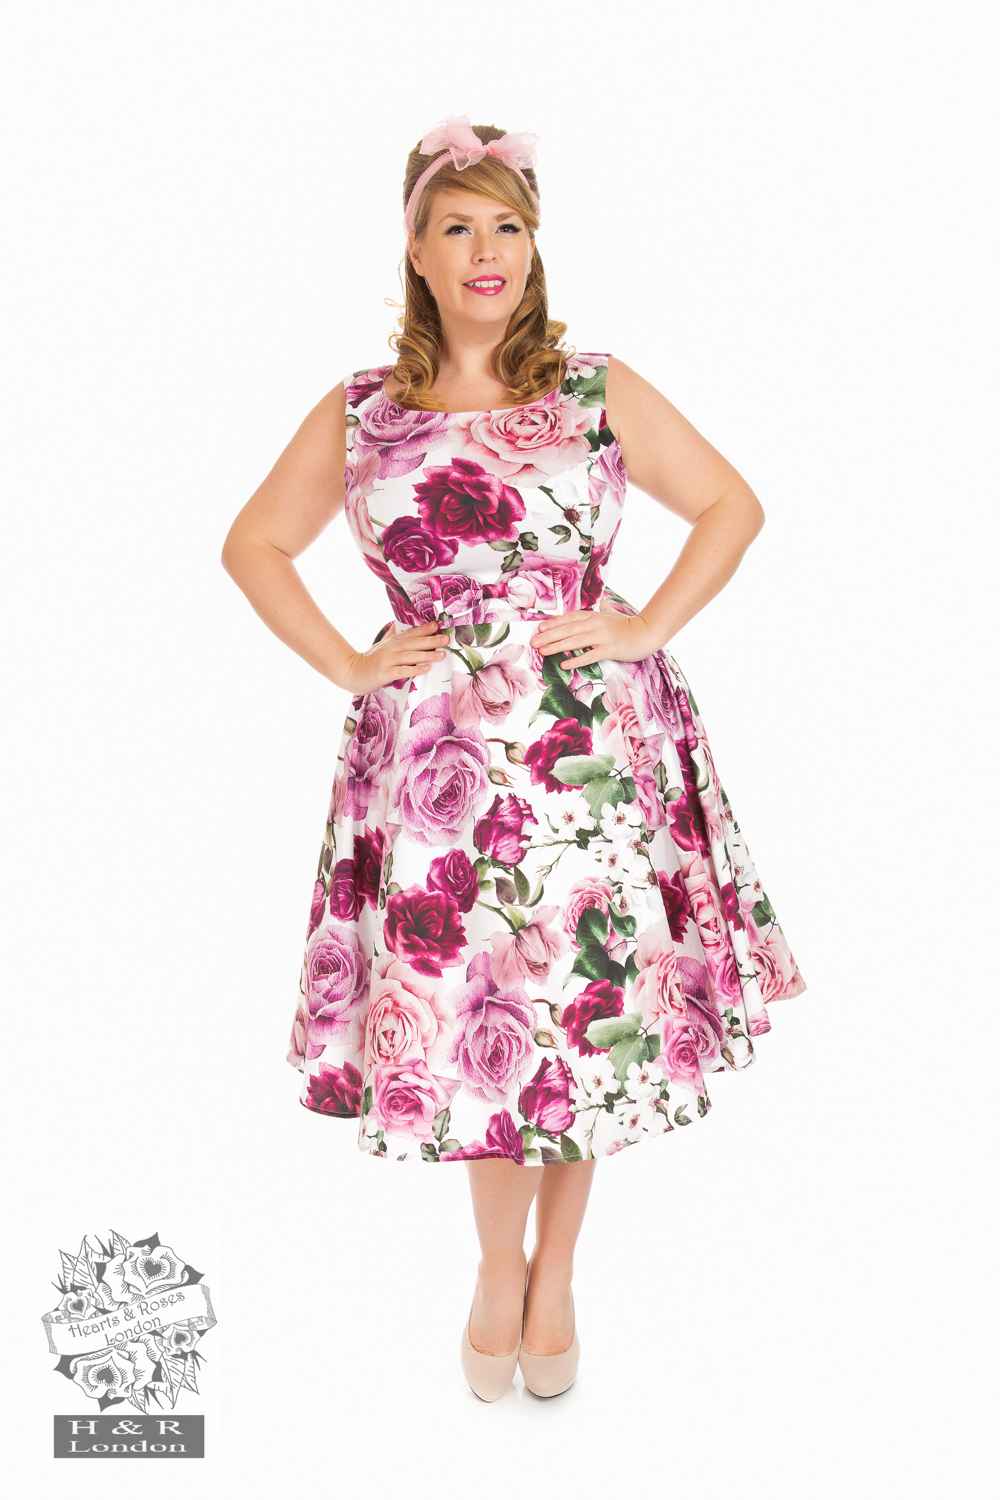 Heart&Roses  Alice swingdress stl 2XL-6XL